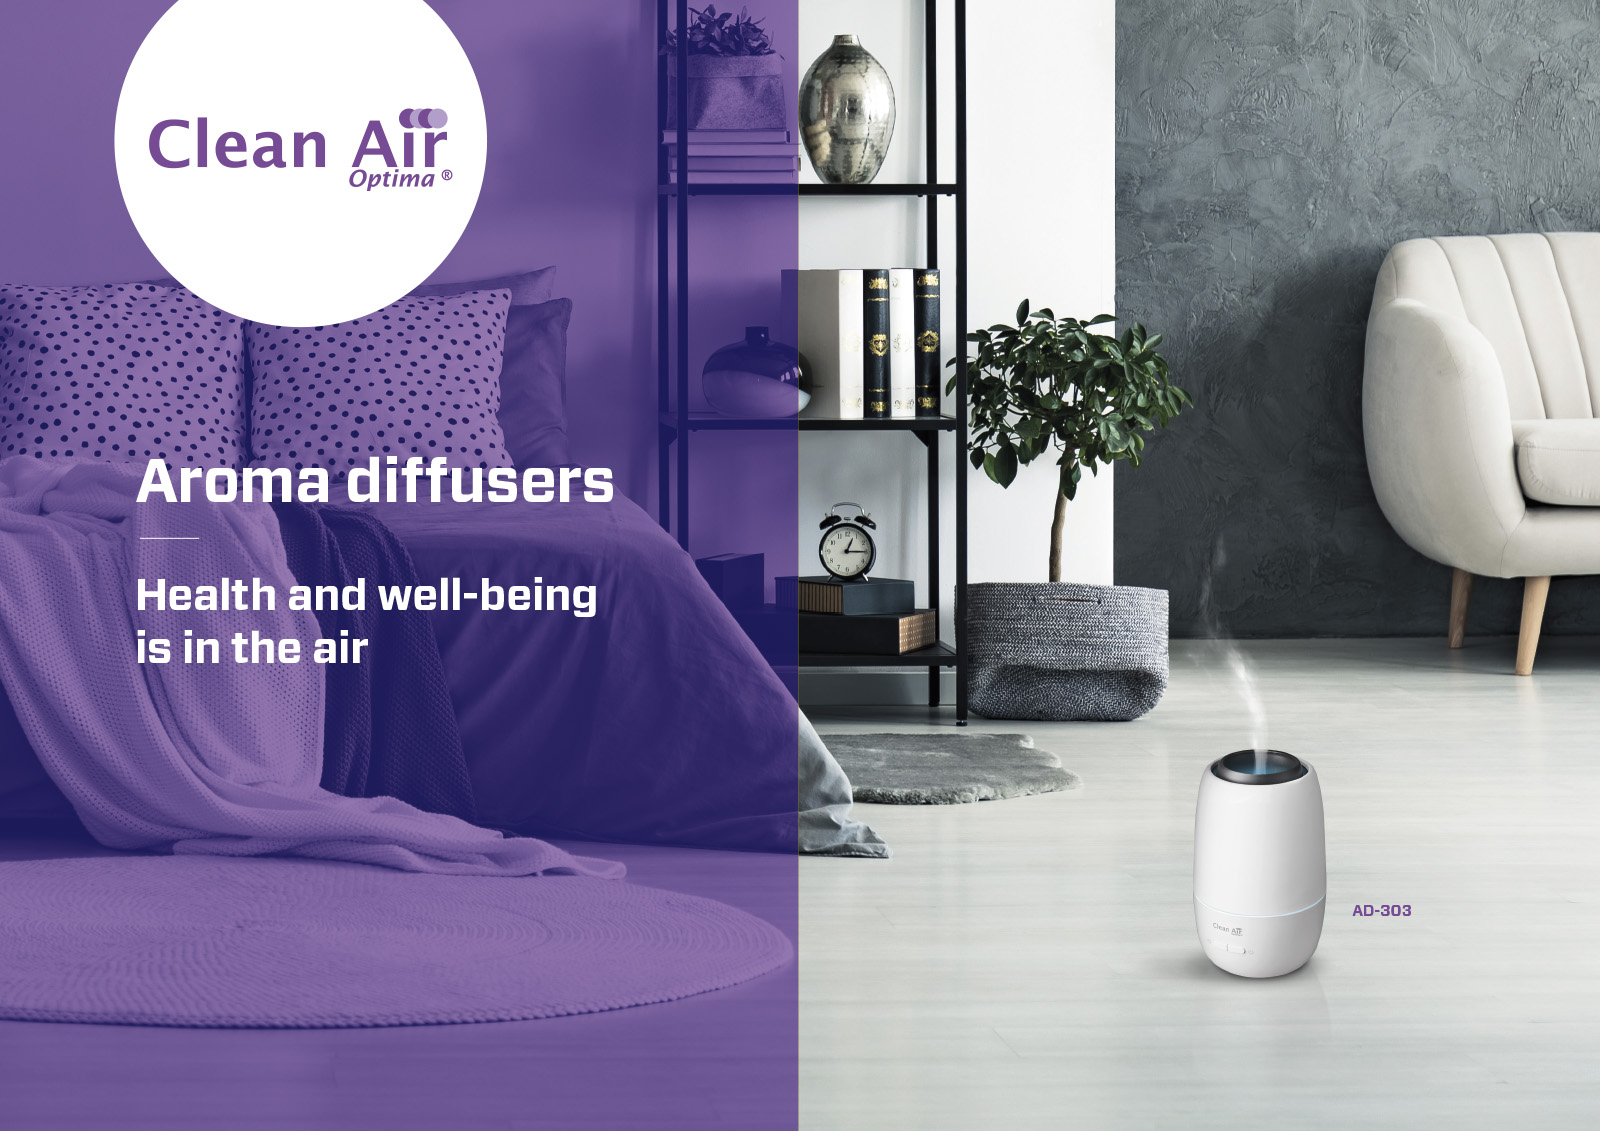 Aroma Diffuser Ambiente Ad 303 Air Purifiers Air Cleaners Ionizers Clean Air Optima Air Purifiers Air Purification Air Cleaner Home Air Purifiers Air Cleaners Air Filters